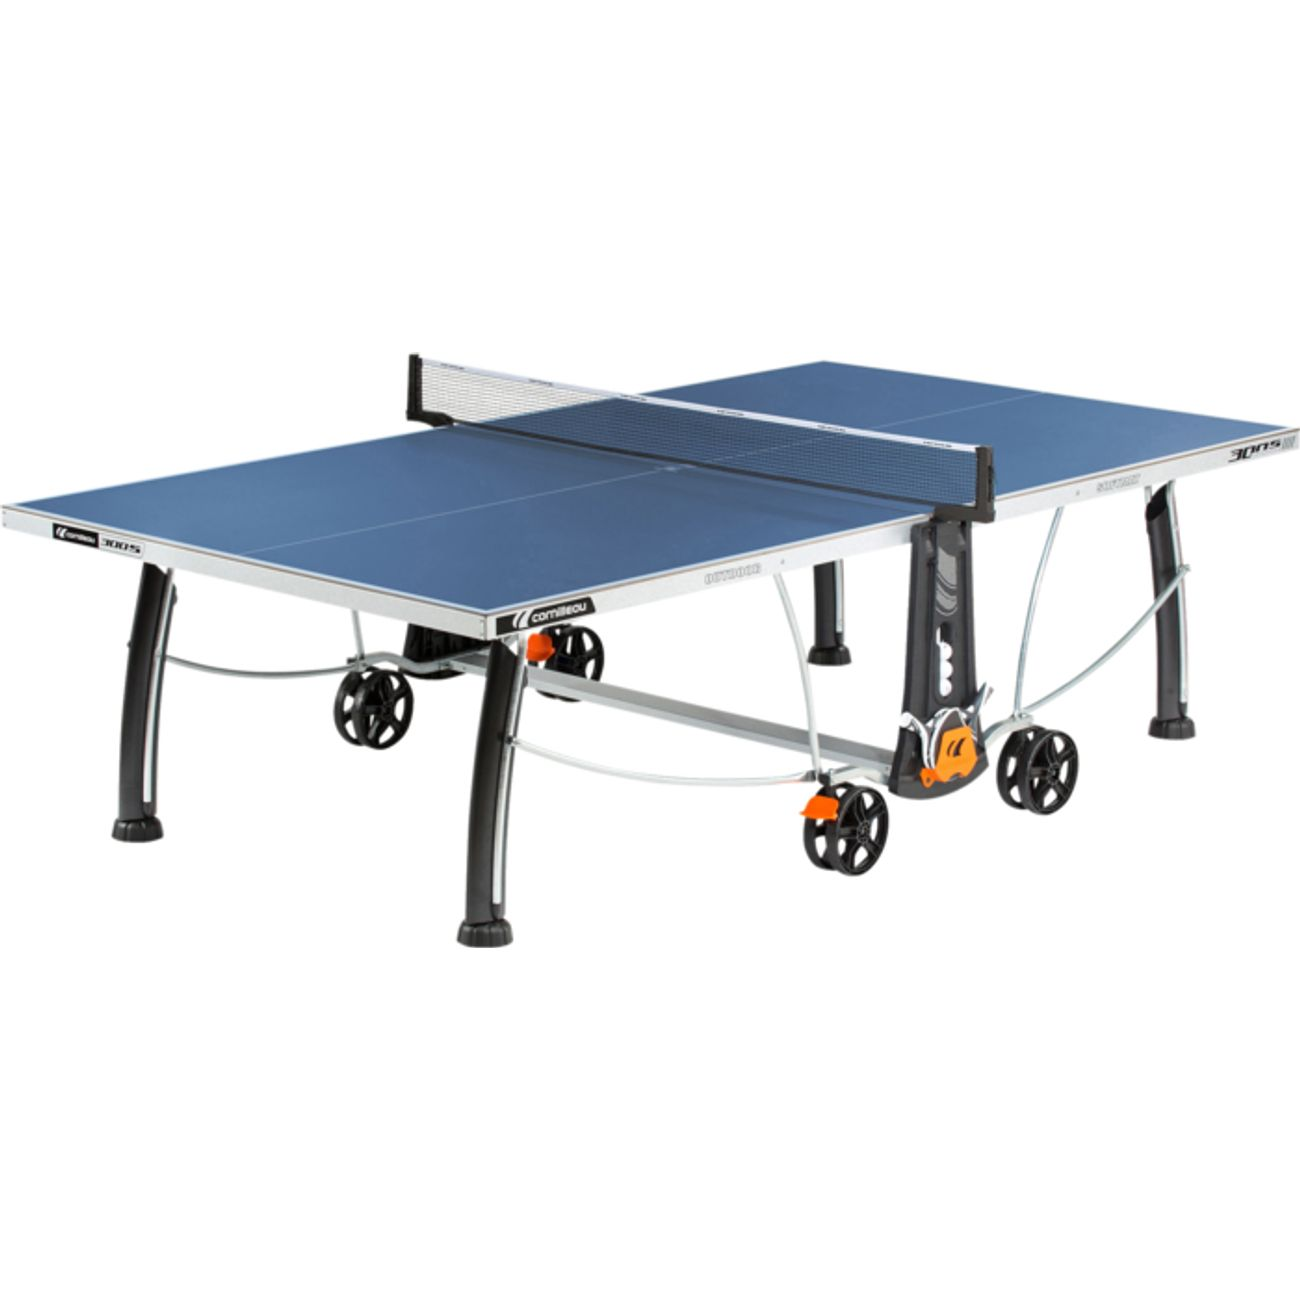 TABLE DE TENNIS DE TABLE   CORNILLEAU TABLE 300S CROSSOVER